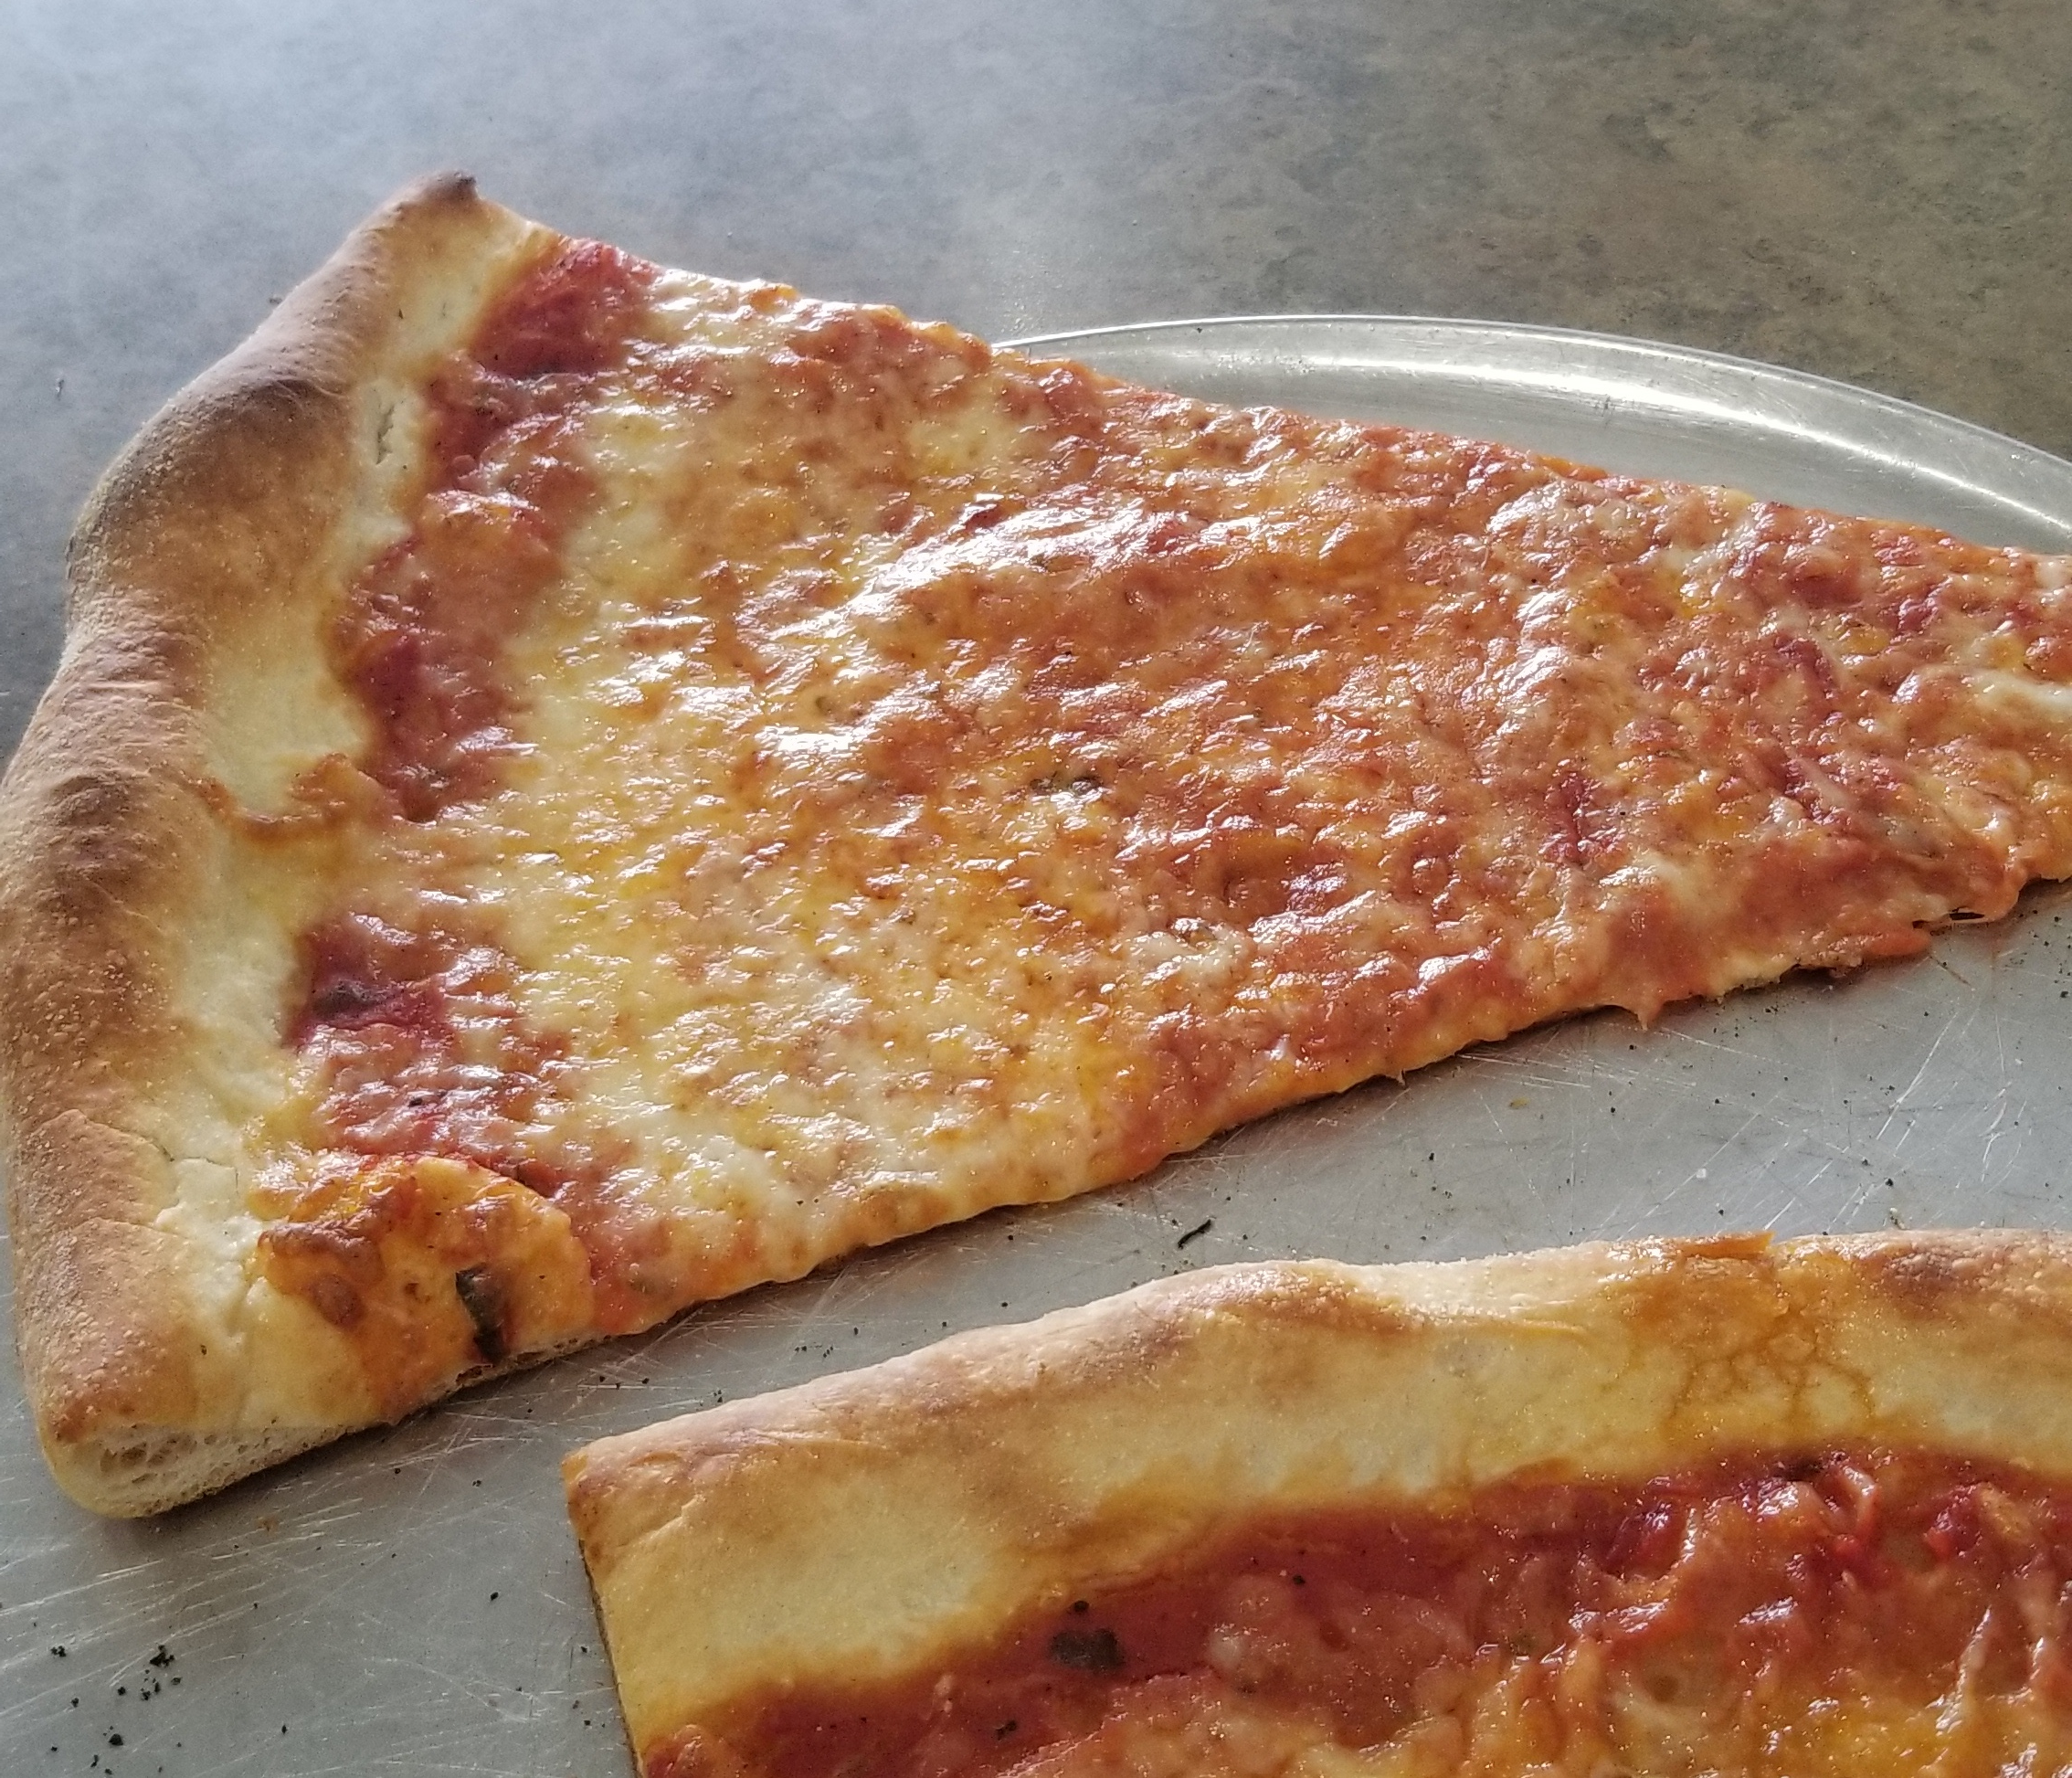 dylan.turpin on One Bite Pizza App